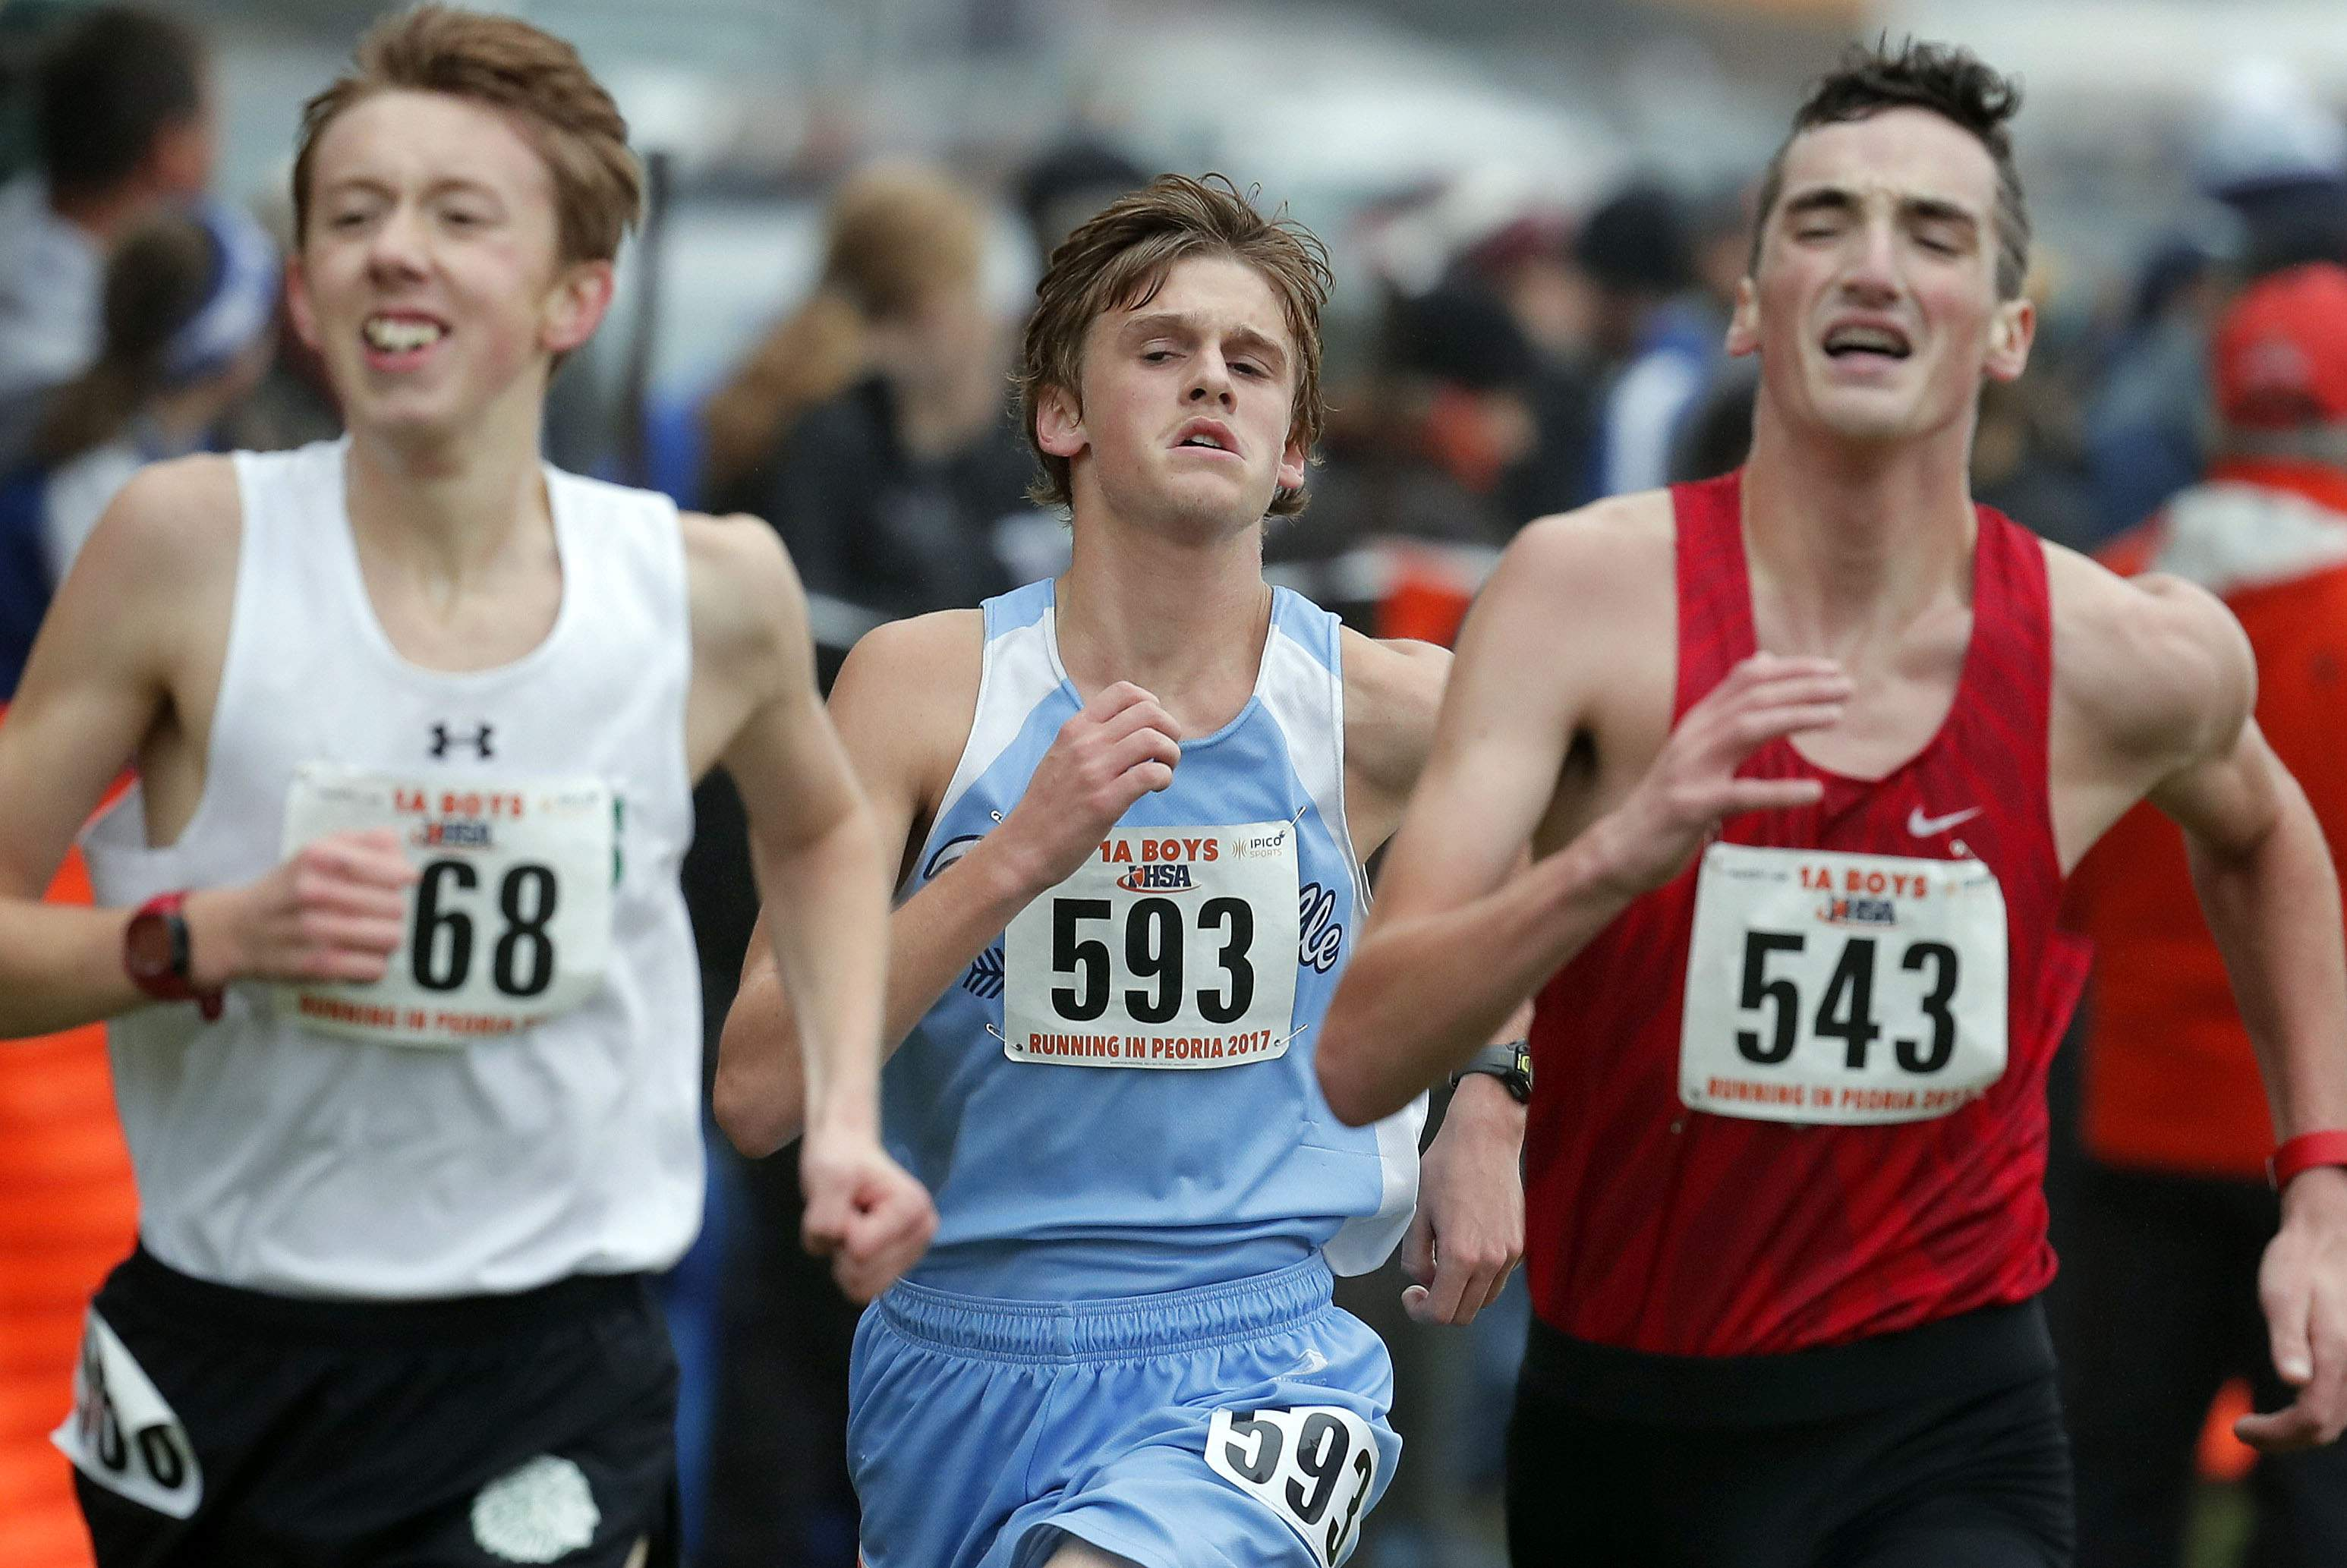 Pinckneyville's Liam Oliver (593) heads to the finish line during the boys Class 1A cross-country finals Saturday in Peoria.